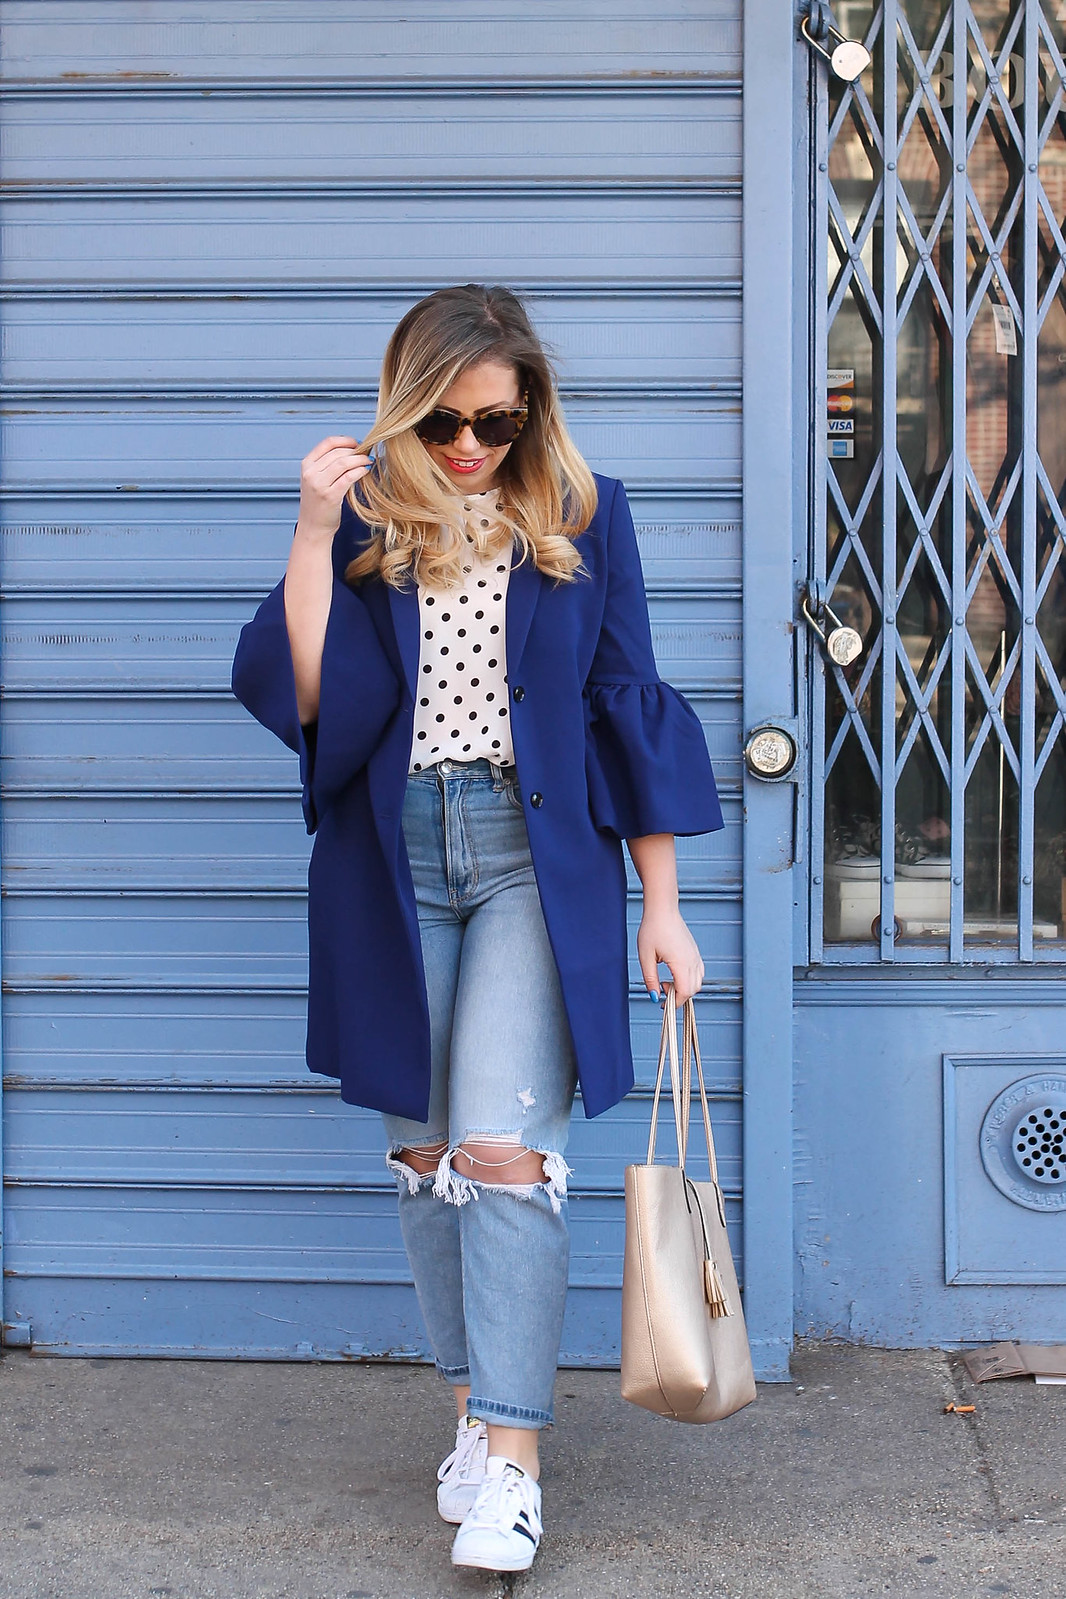 Spring Outfit Blue Bell Sleeve Jacket Polka Dot Tank Top Mom Jeans Adidas Sneakers Living After Midnite Jackie Giardina Style Fashion Blogger